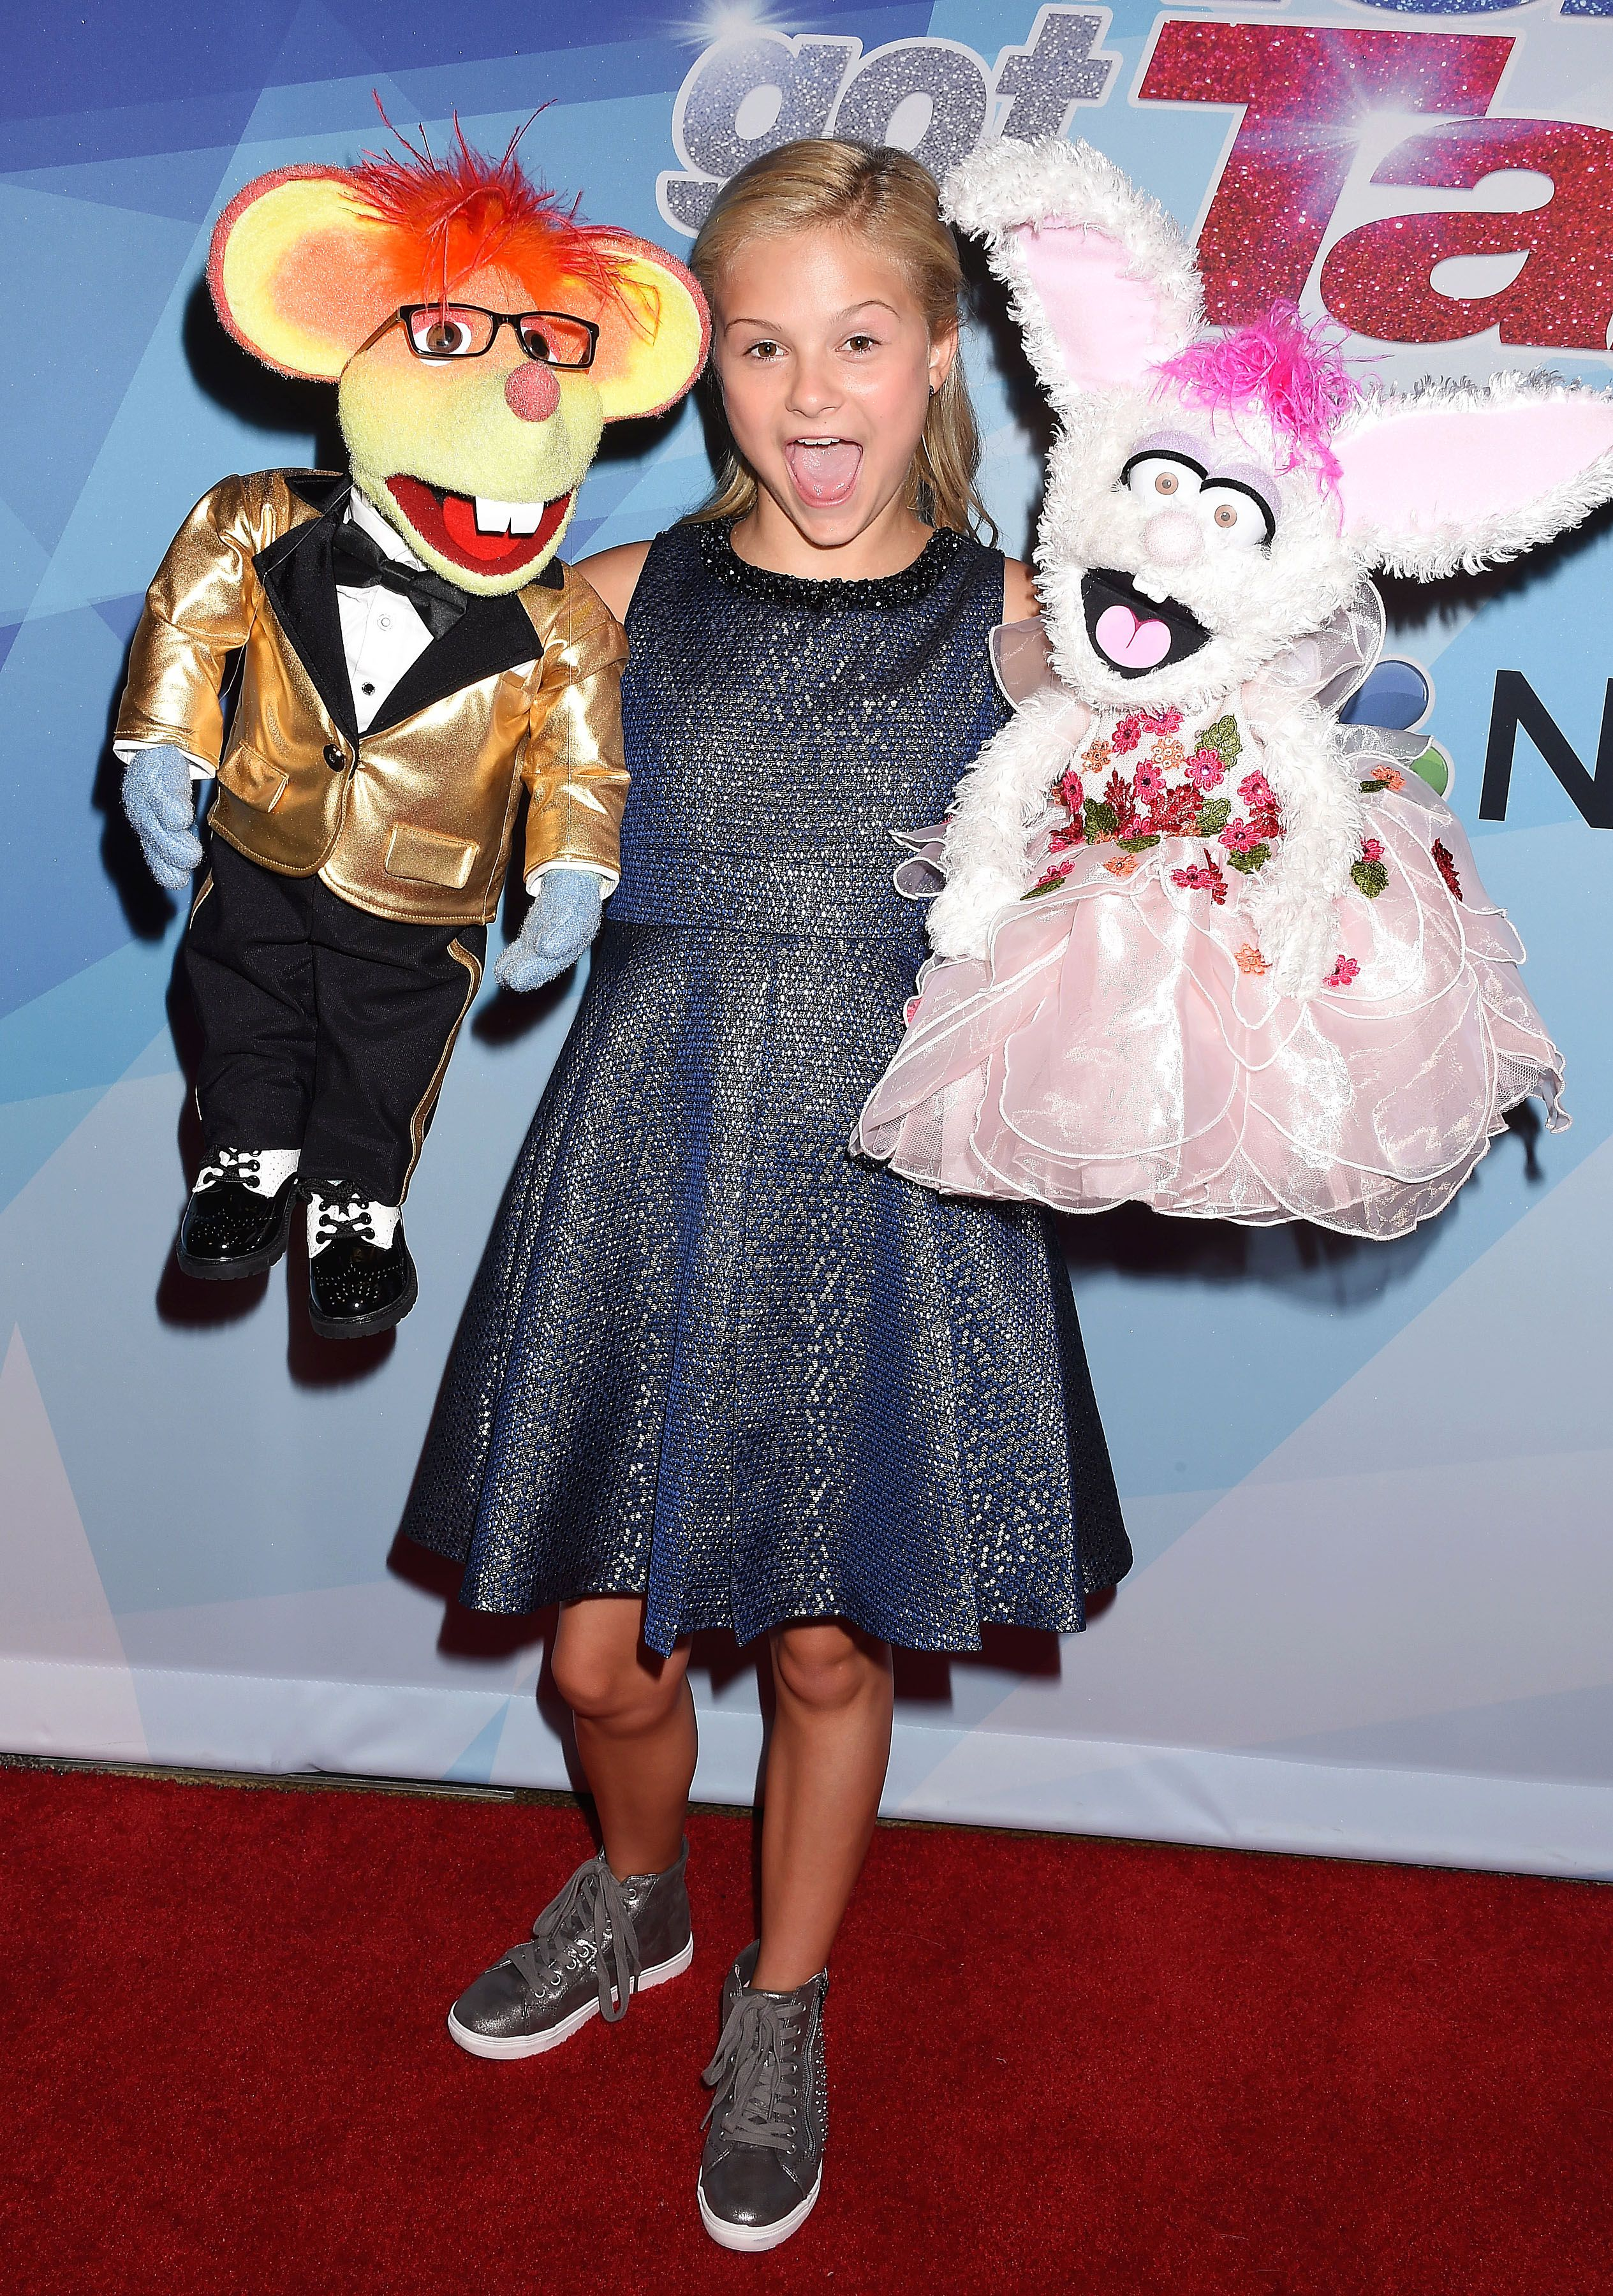 6 Things to Know About Darci Lynne Farmer, 'AGT' Winner and